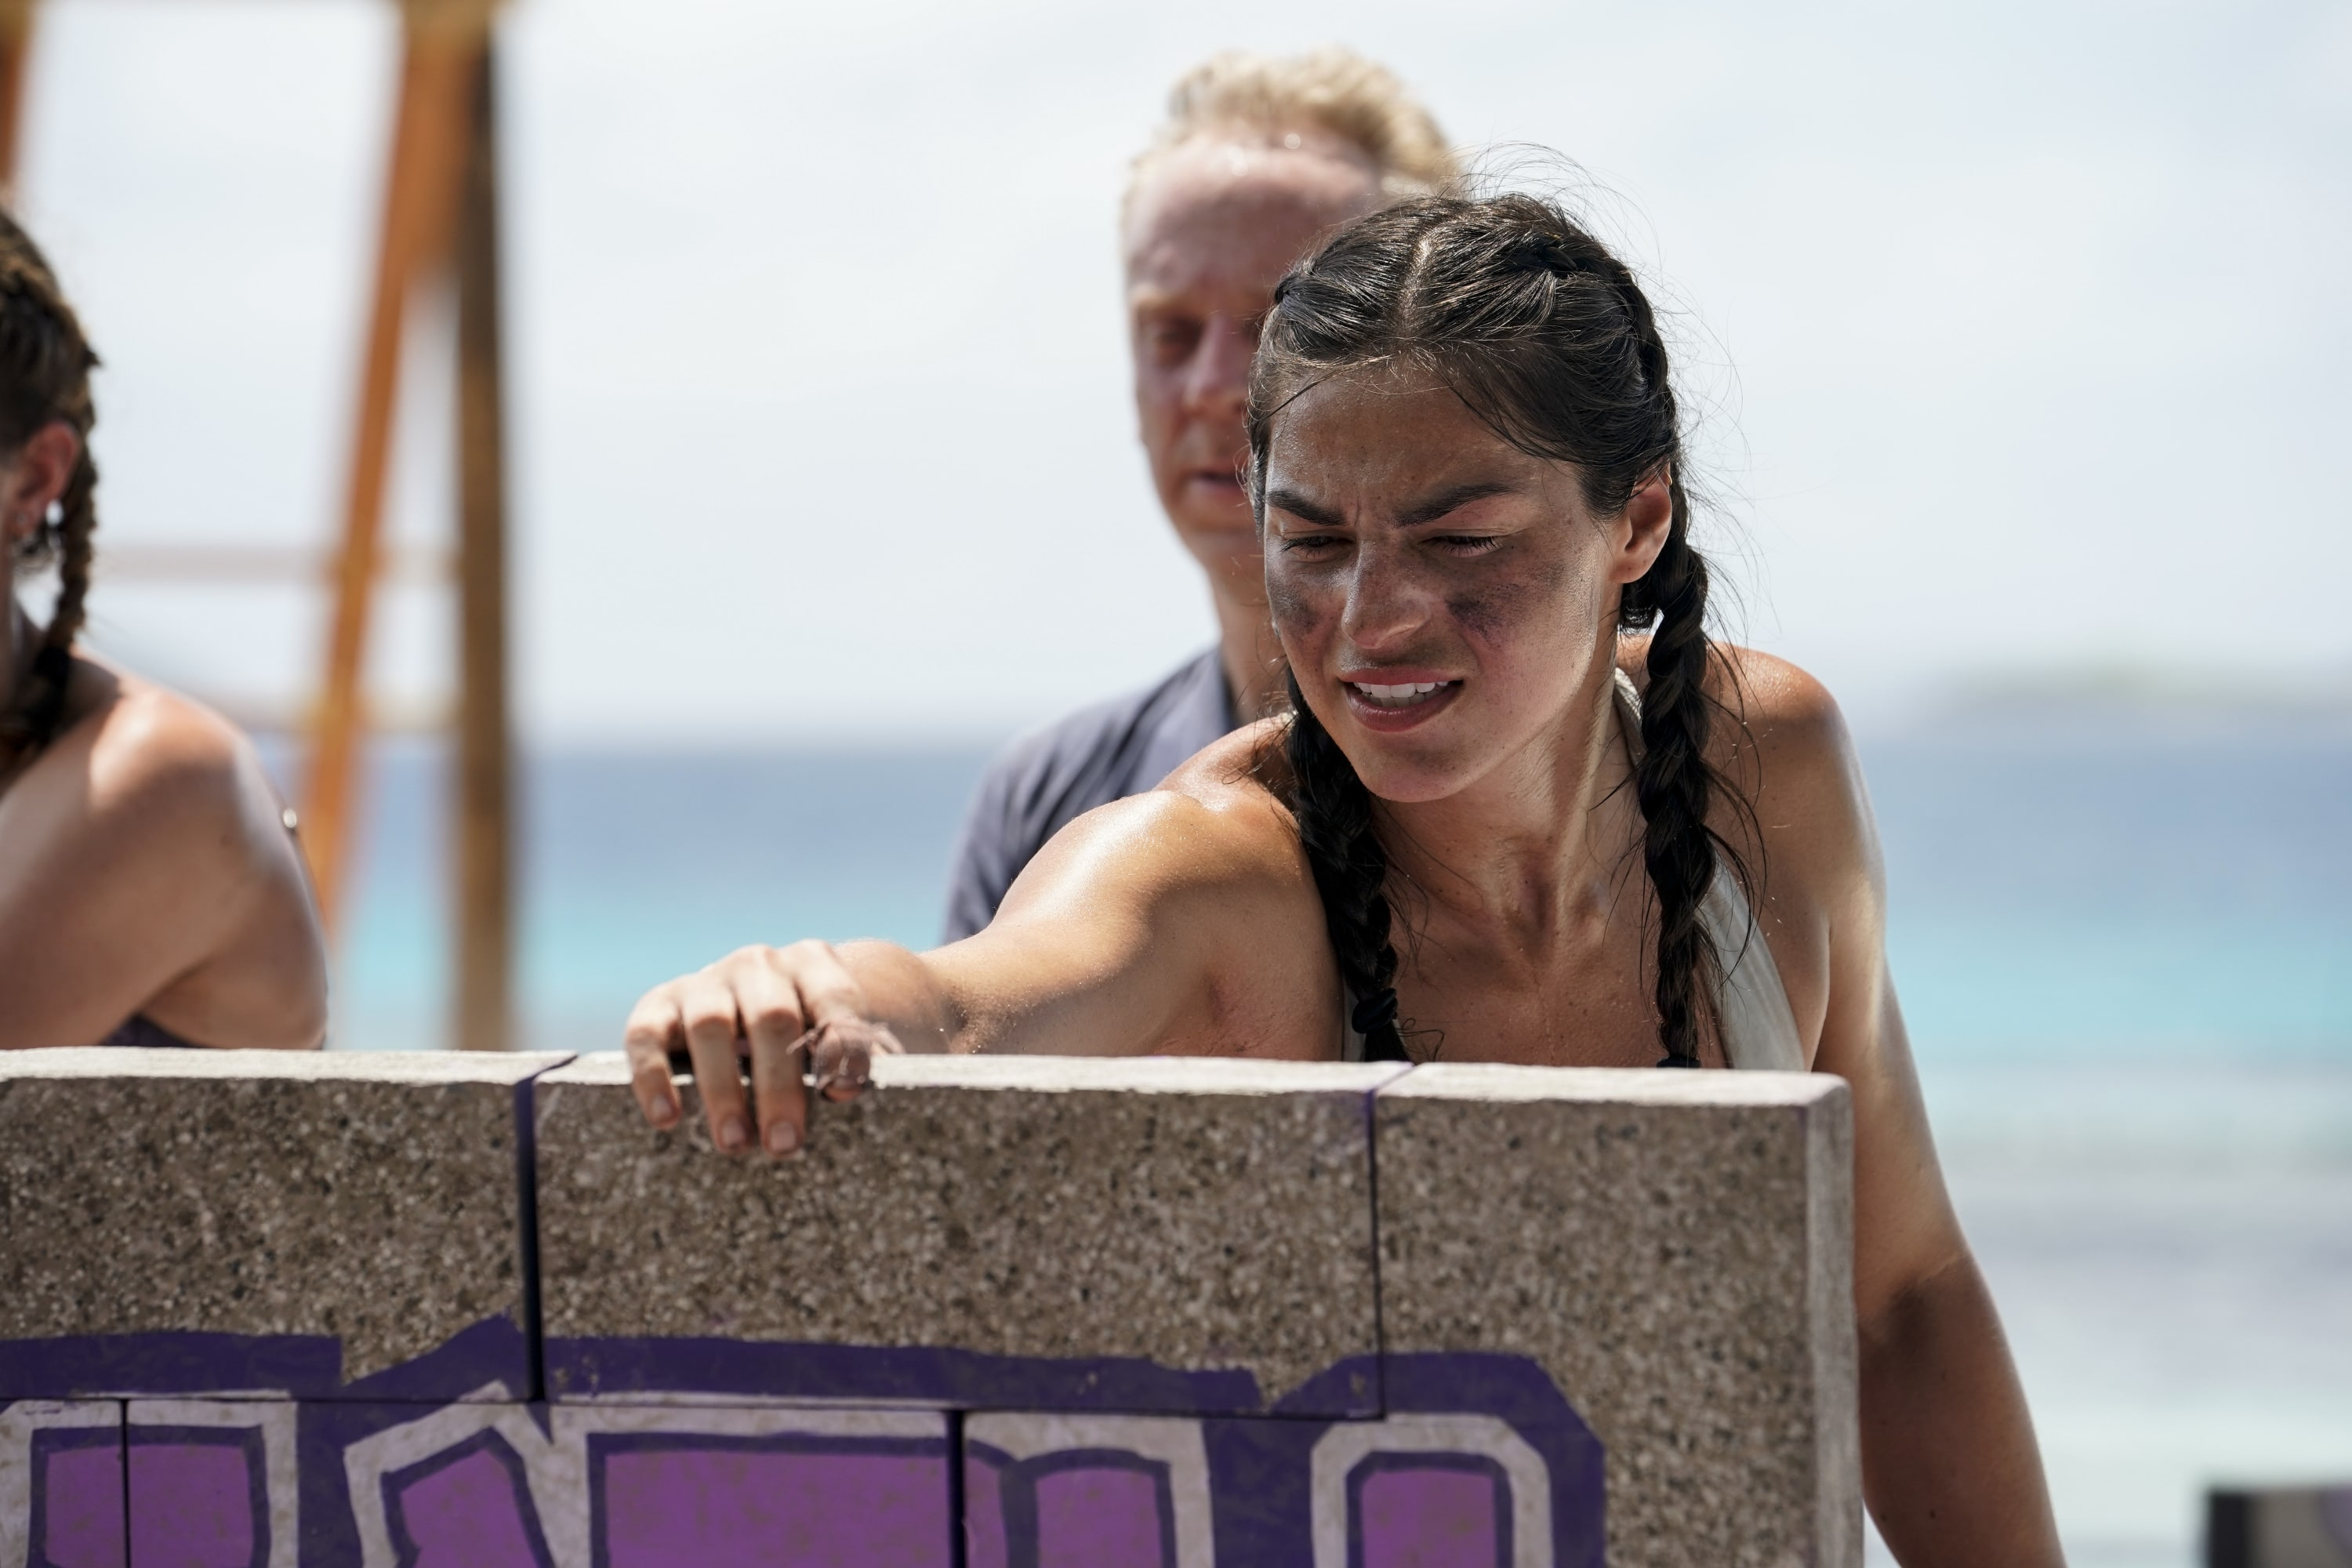 Natalia Azoqa on Survivor: David vs. Goliath